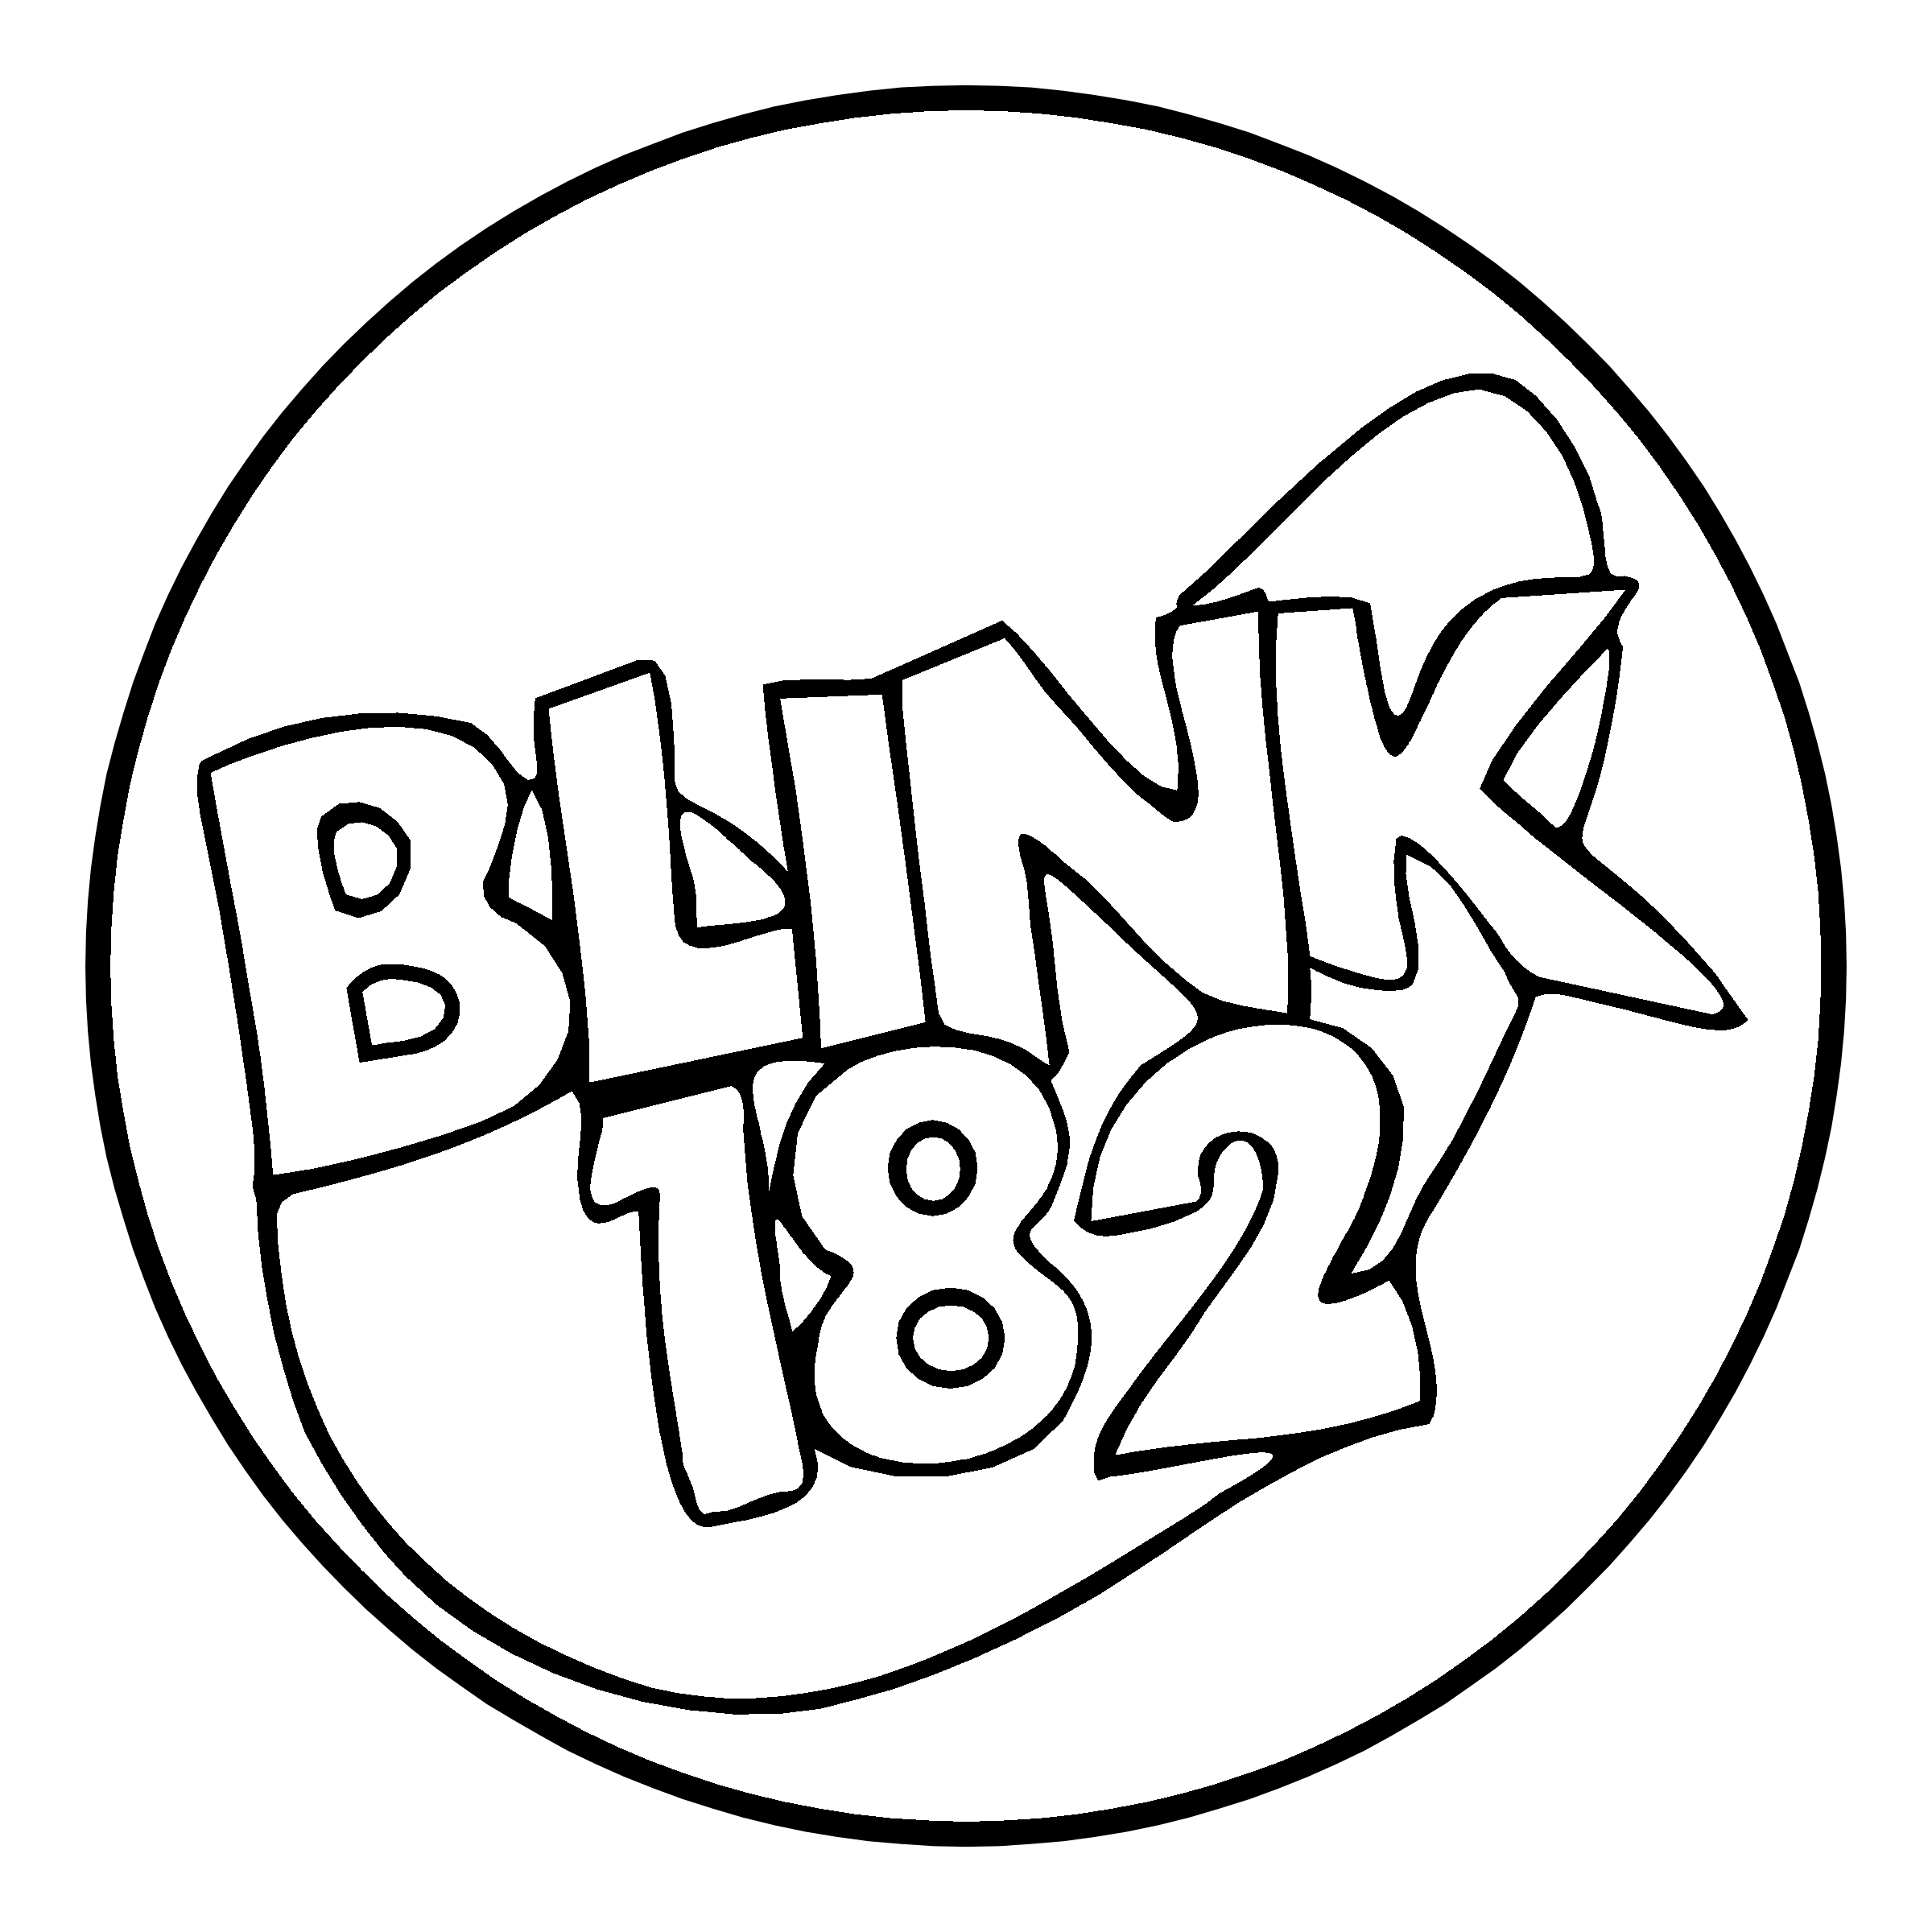 Blink 182 Logo PNG Transparent & SVG Vector.